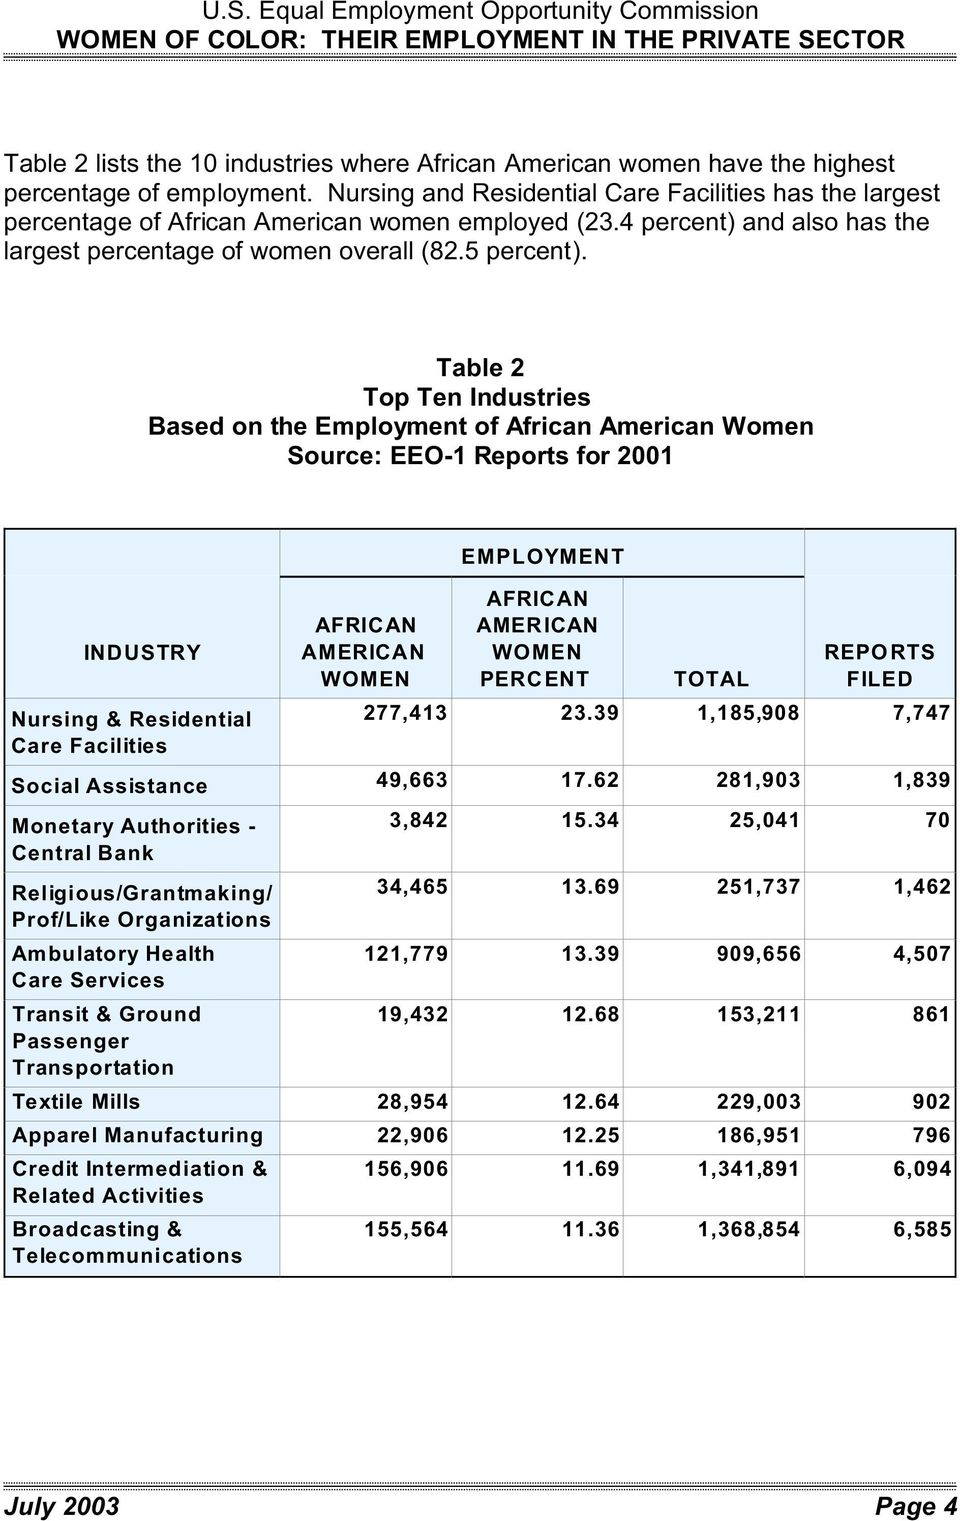 Table 2 Top Ten Industries Based on the Employment of African American Women Source: Reports for 2001 Nursing & Residential Care Facilities AFRICAN EMPLOY AFRICAN PERCENT REPORTS FILED 277,413 23.